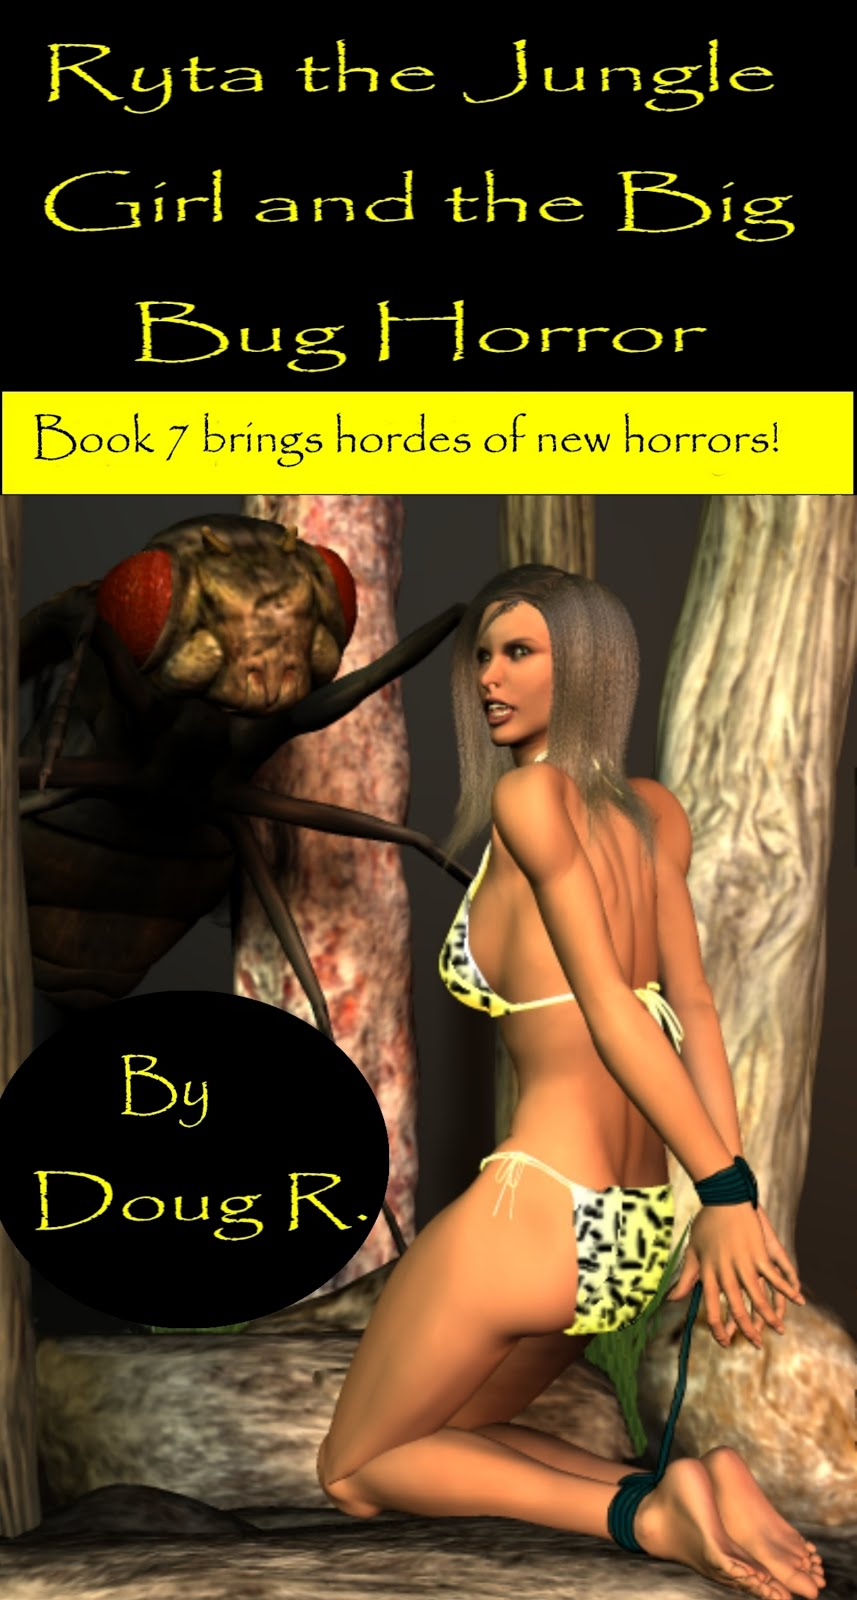 Ryta the Jungle Girl and the Big Bug Horror